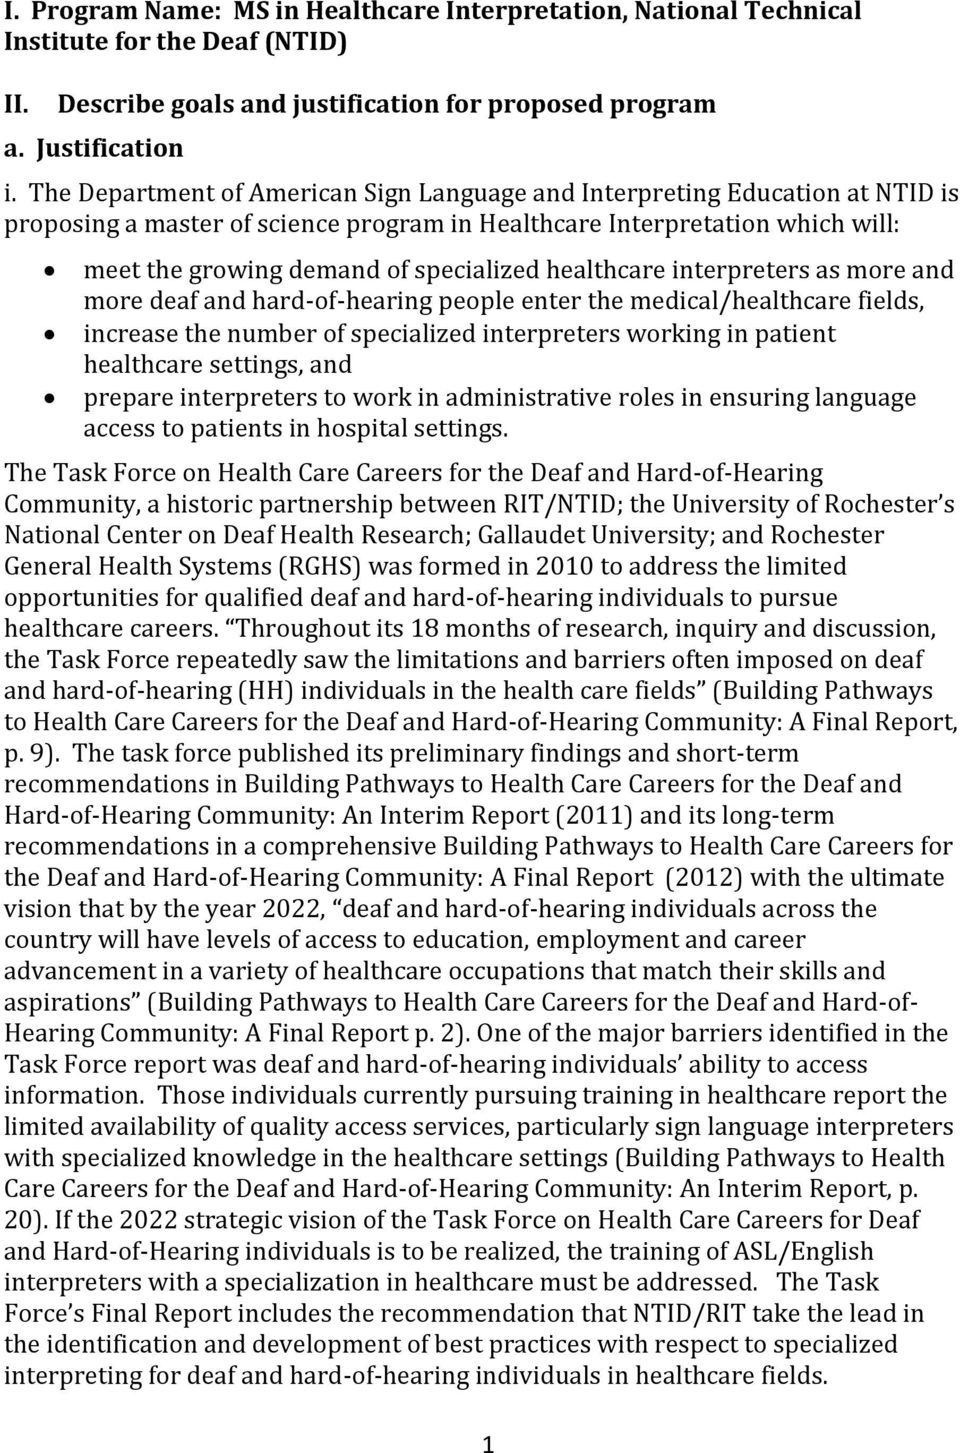 healthcare interpreters as more and more deaf and hard-of-hearing people enter the medical/healthcare fields, increase the number of specialized interpreters working in patient healthcare settings,